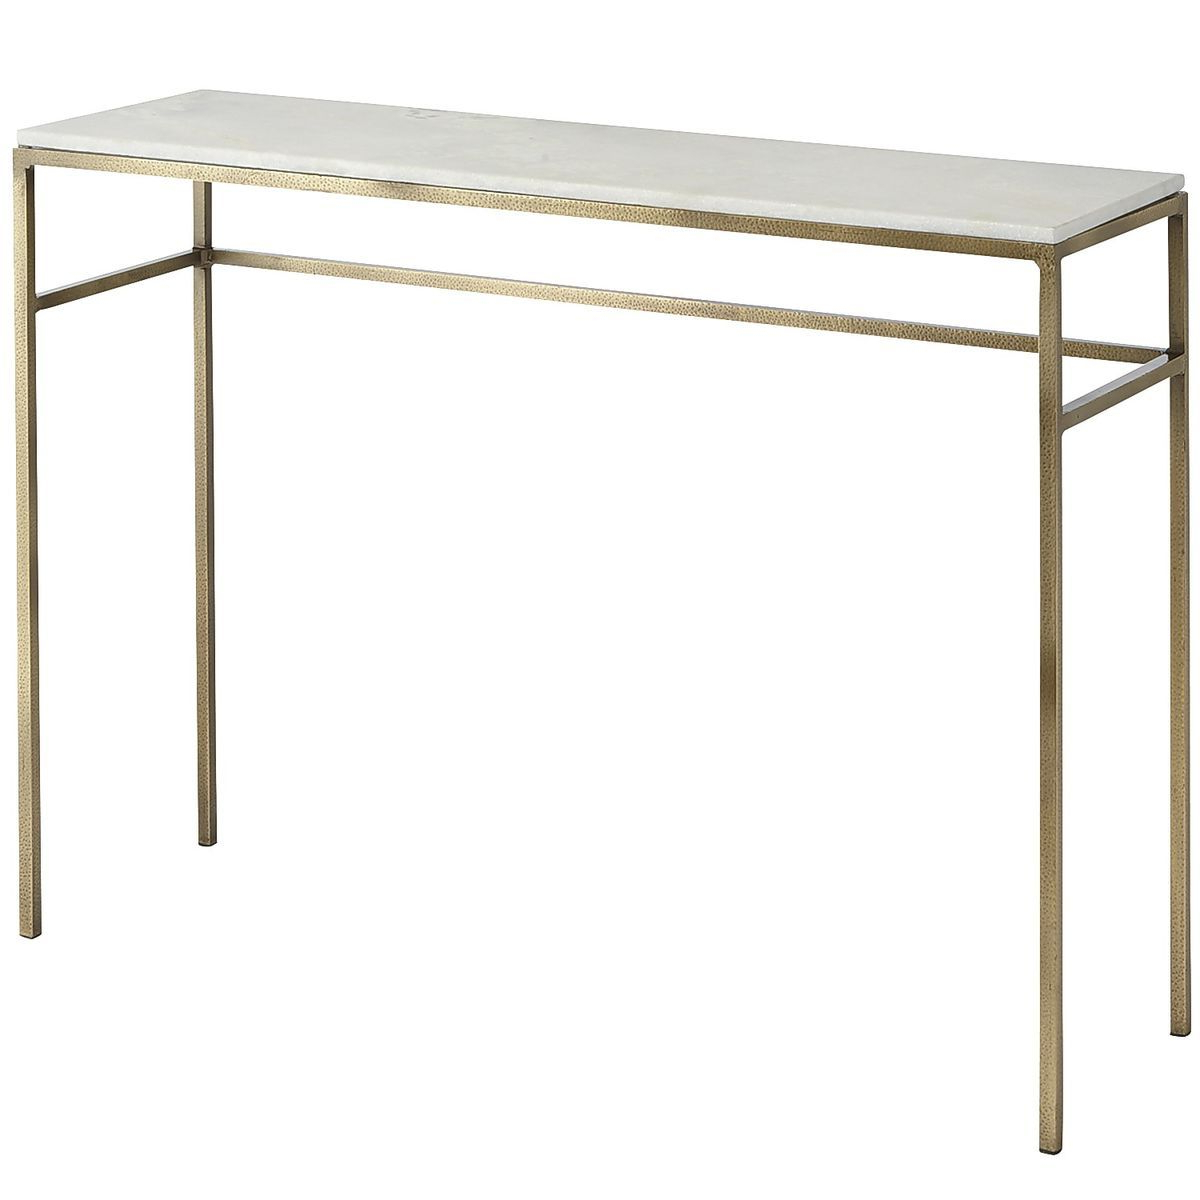 Most Recent Elke Marble Console Tables With Brass Base In If You're Looking For A Way To Elevate Your Living Space, Ethel (Gallery 12 of 20)